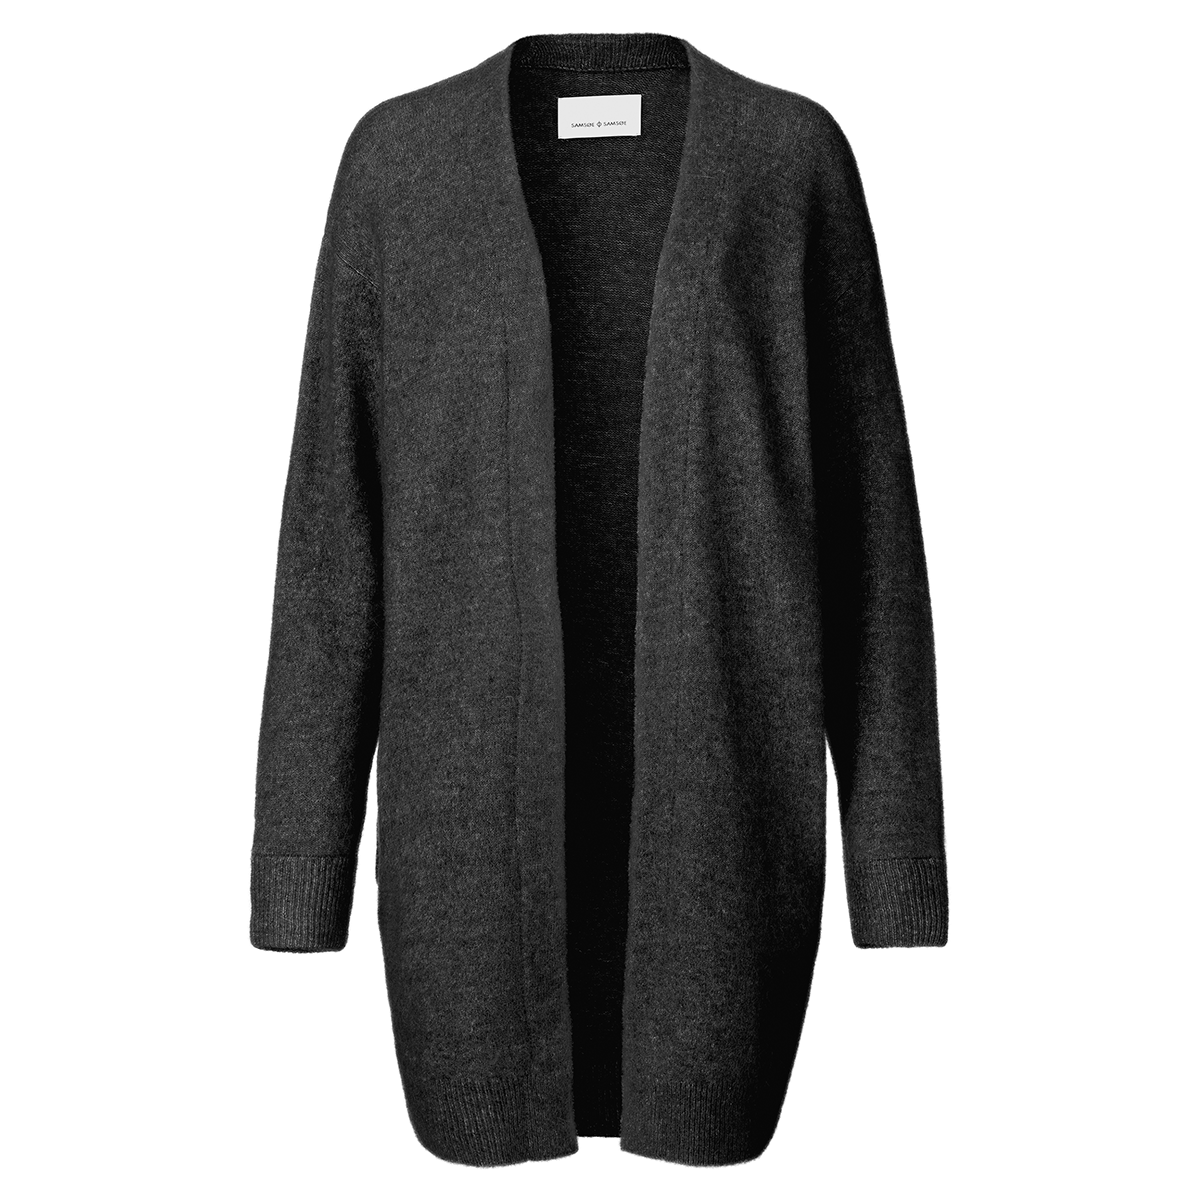 Samsoe Samsoe Nor Cardigan 7355, Black